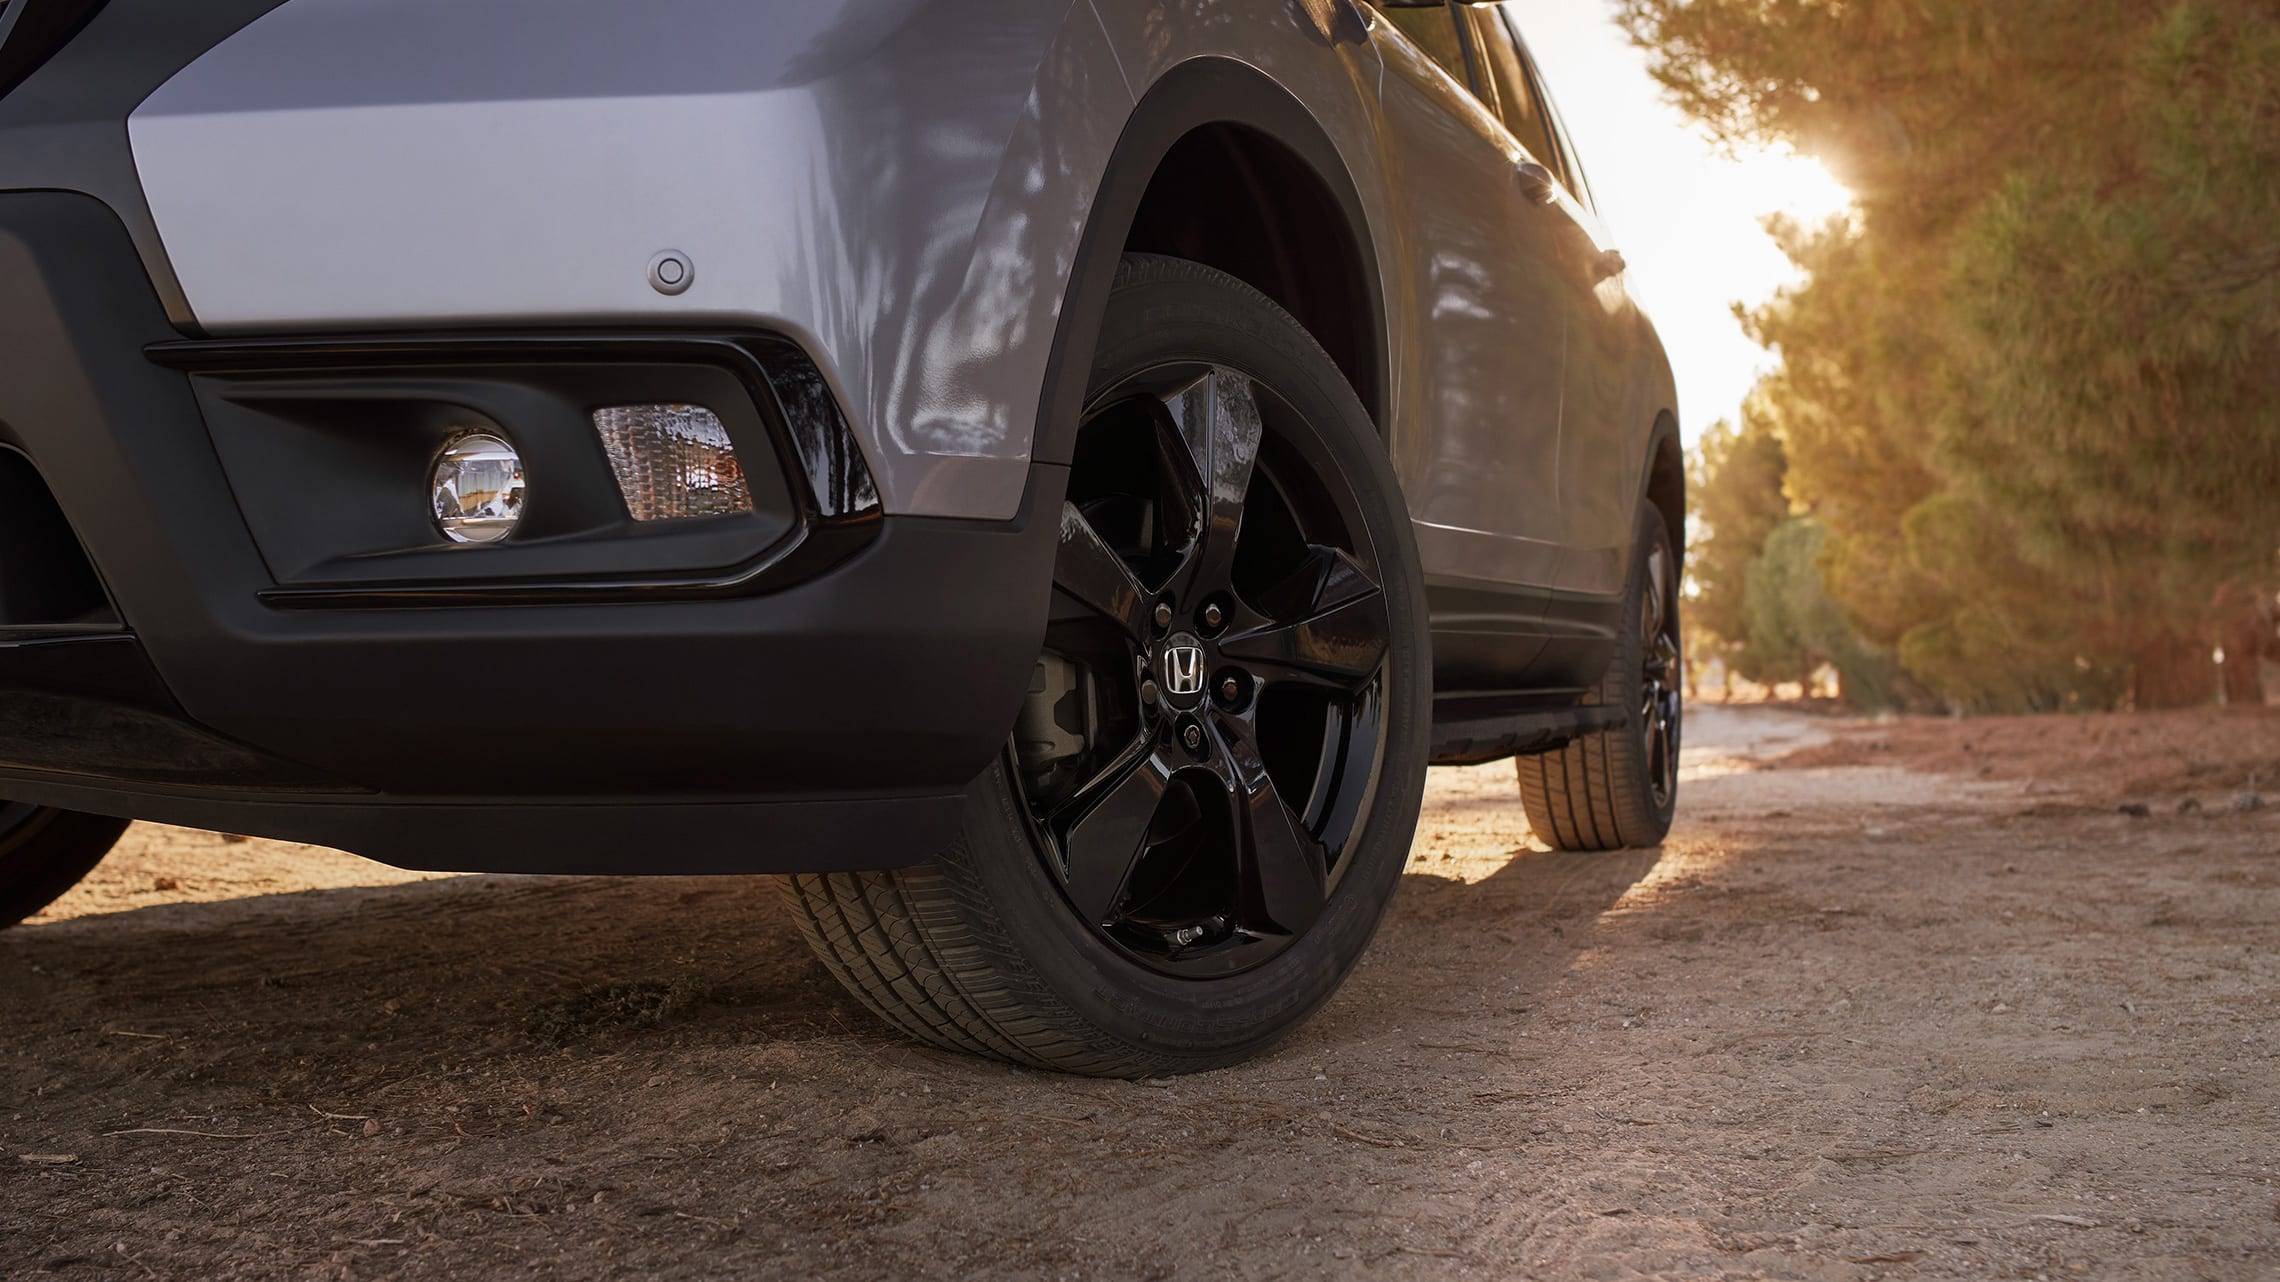 20-inch black alloy wheels on the 2020 Honda Passport Elite, in Lunar Silver Metallic with Honda Genuine Accessories, driving on a rugged road.